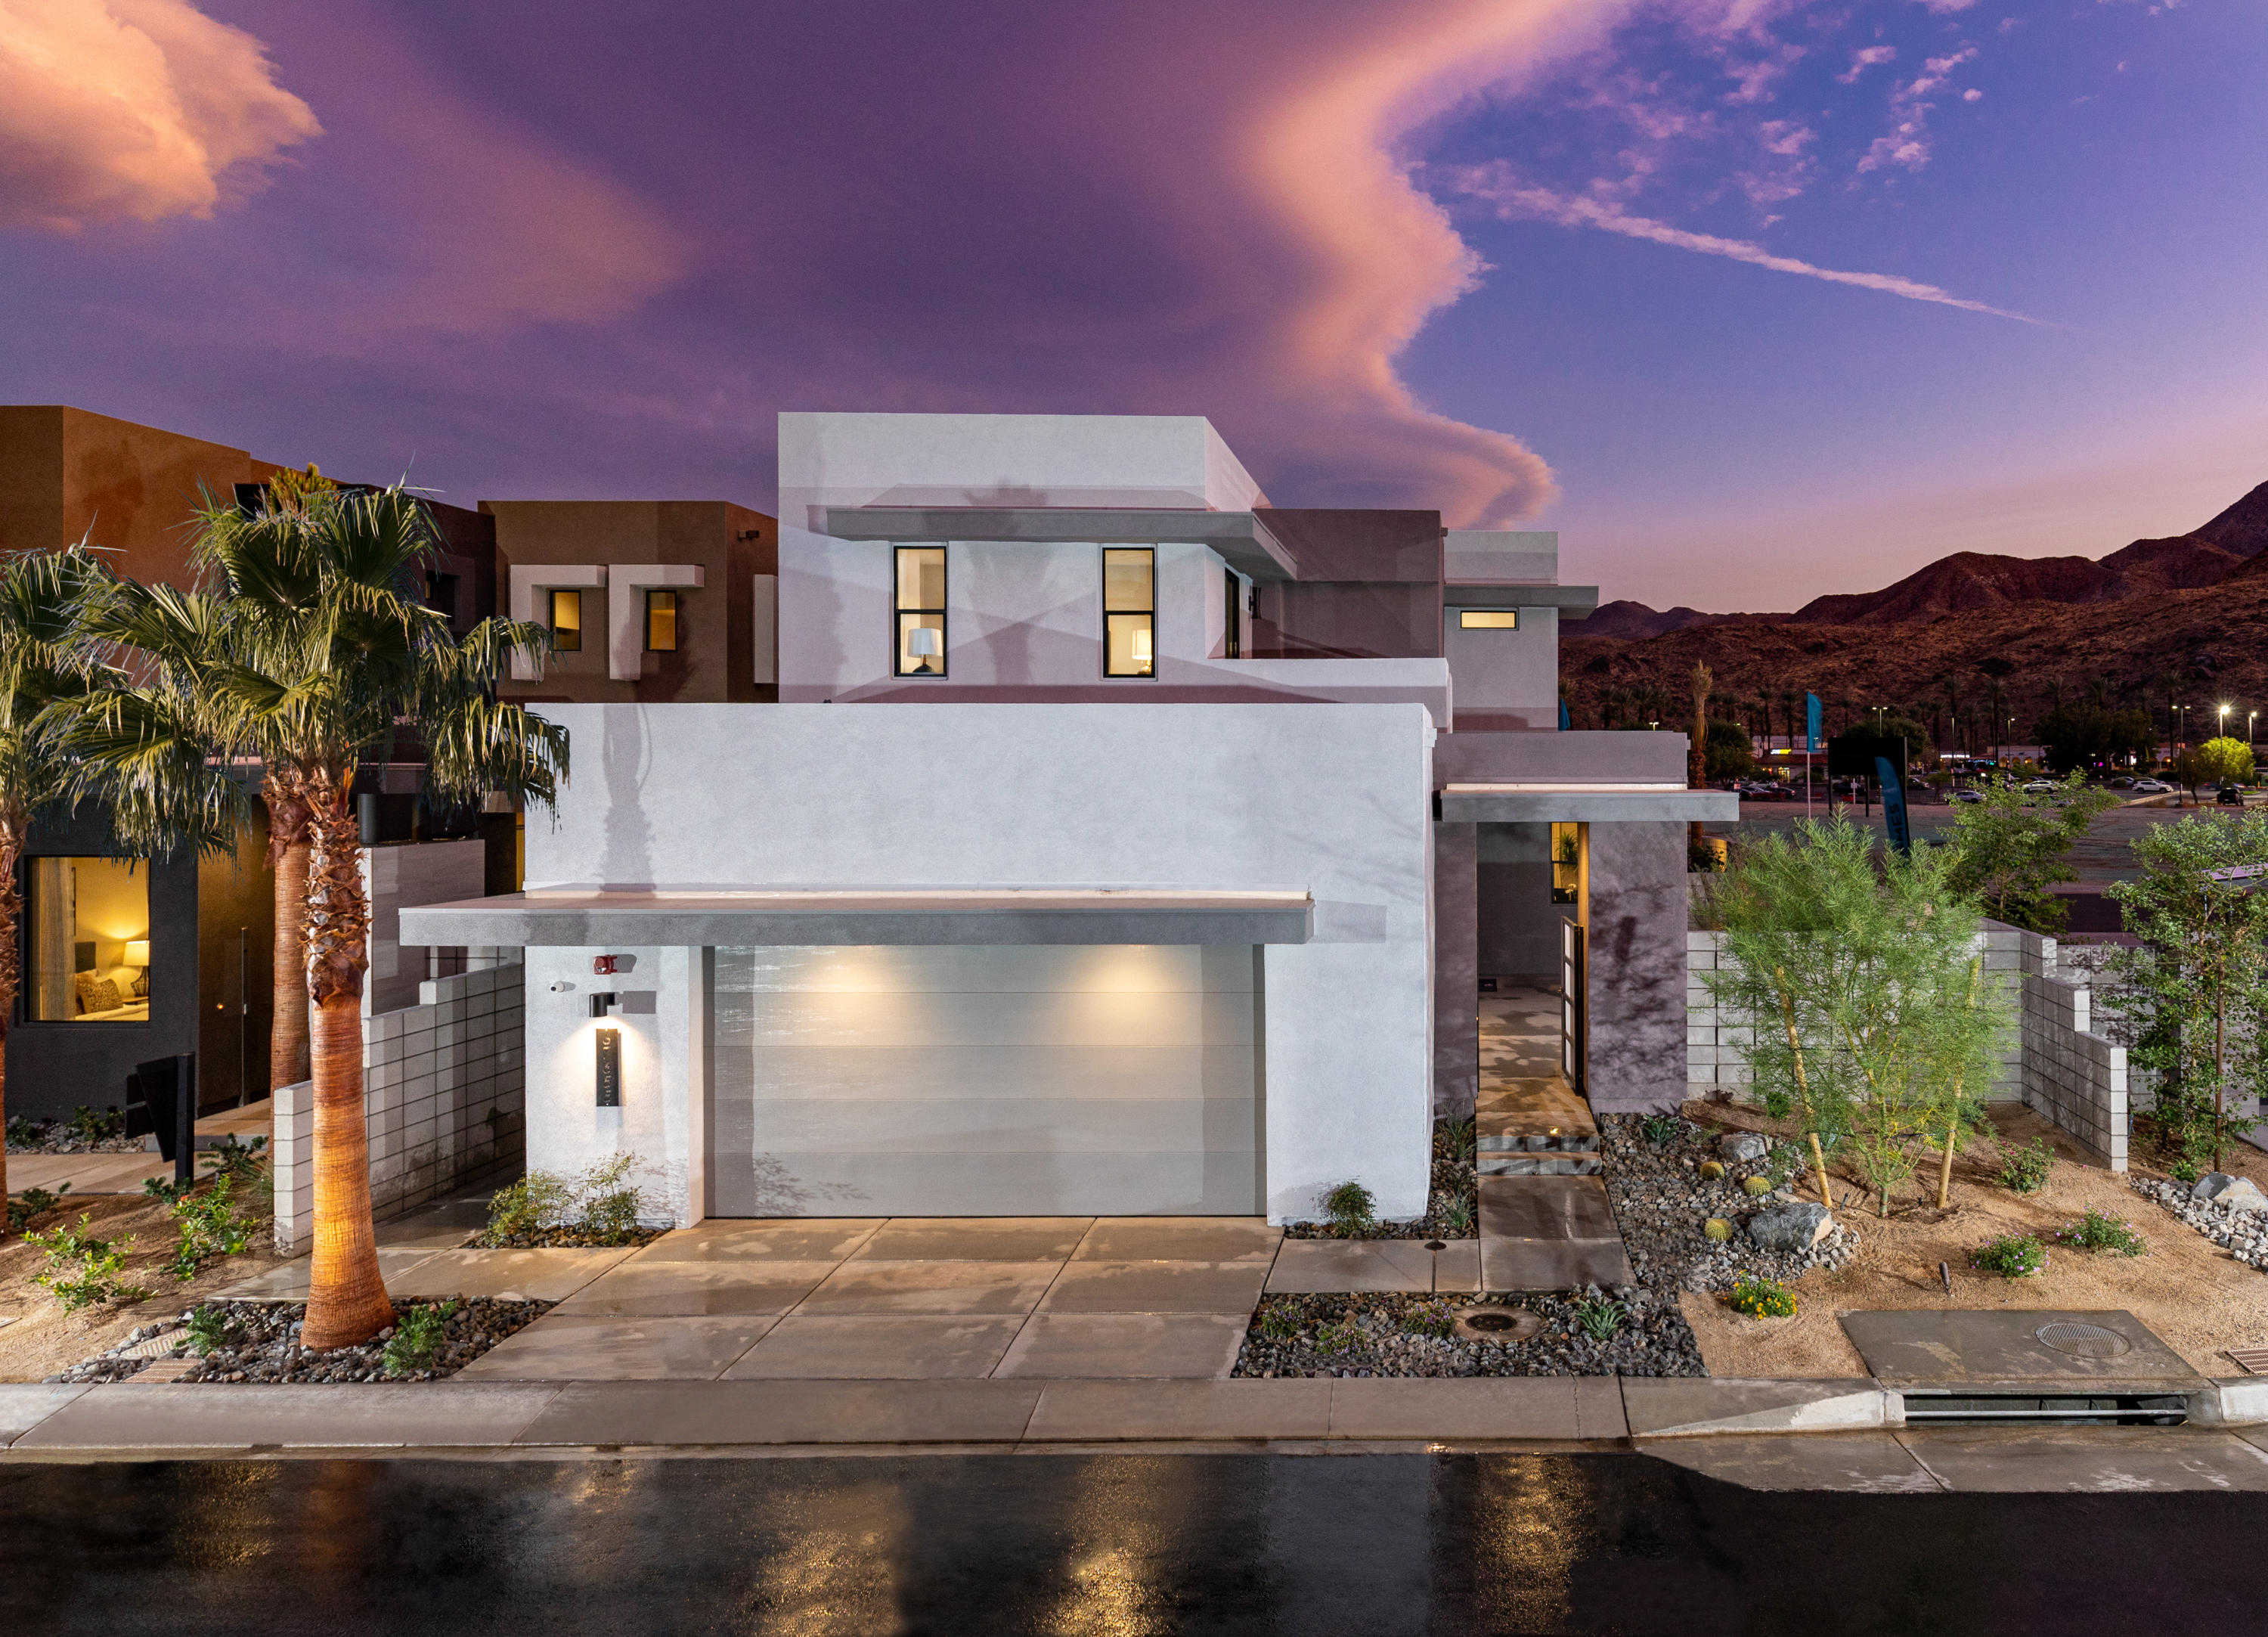 $744,900 - 3Br/3Ba -  for Sale in District East, Cathedral City